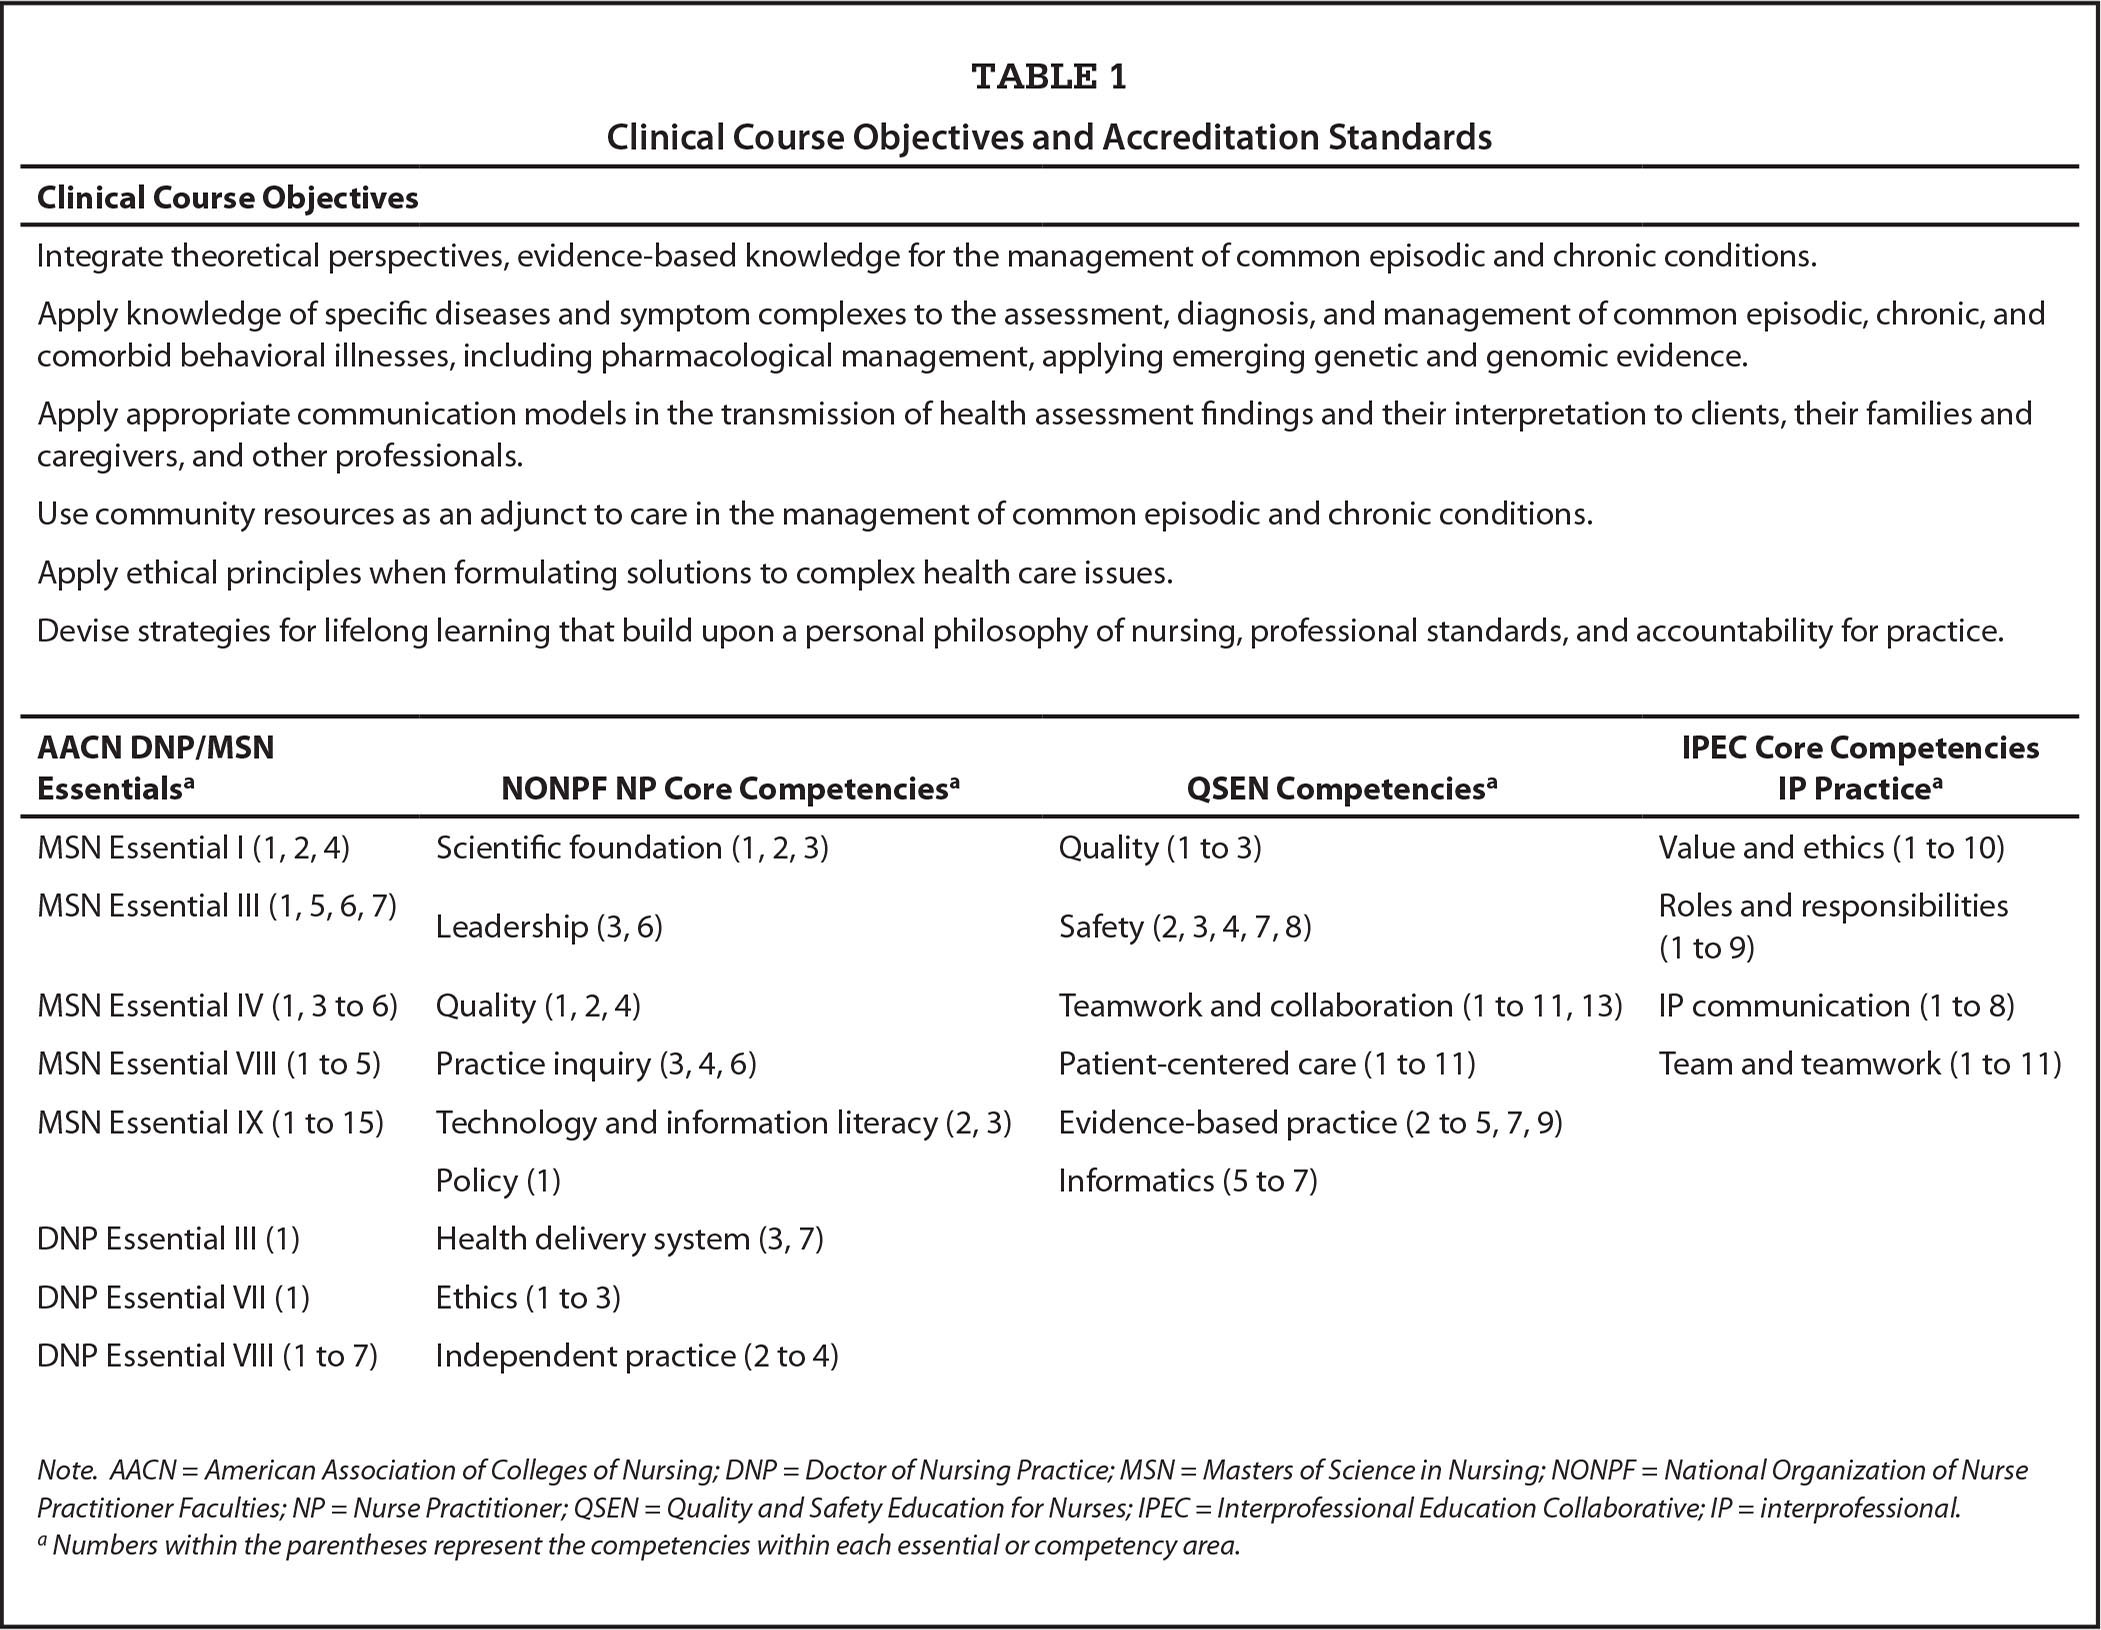 Clinical Course Objectives and Accreditation Standards